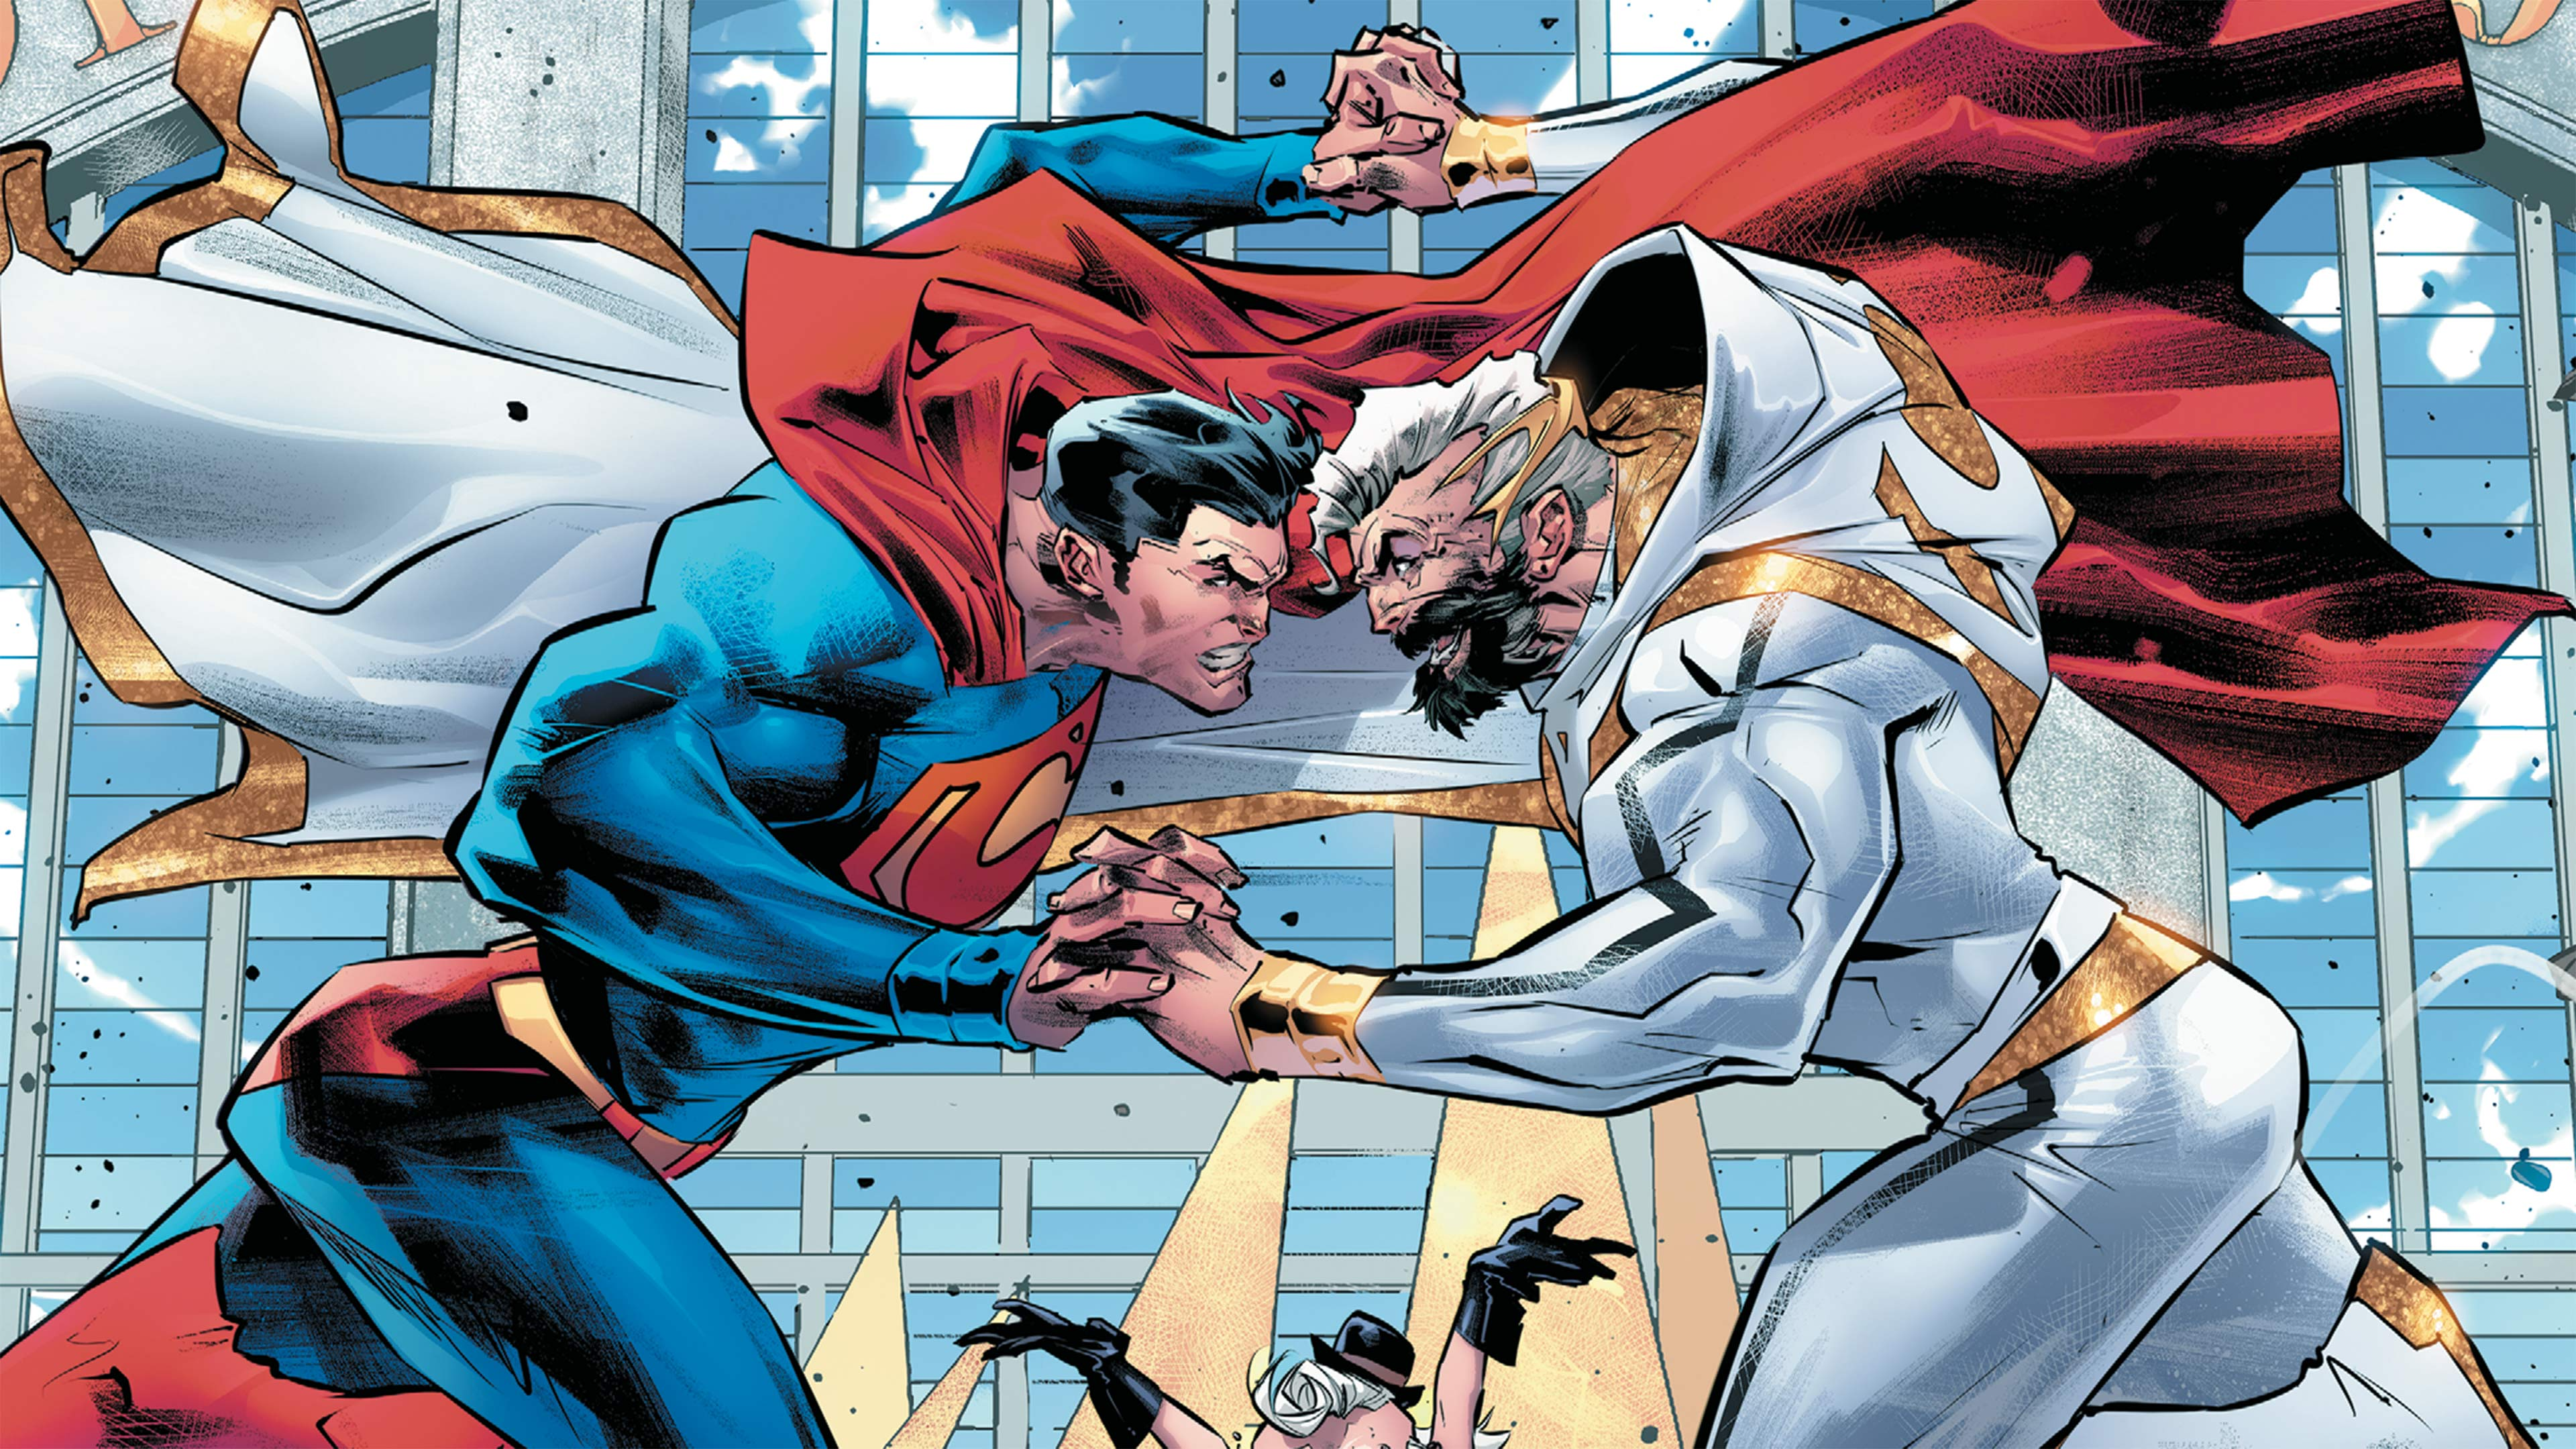 whatsnew_justiceleague_news_hero-c_v1_200313.jpg